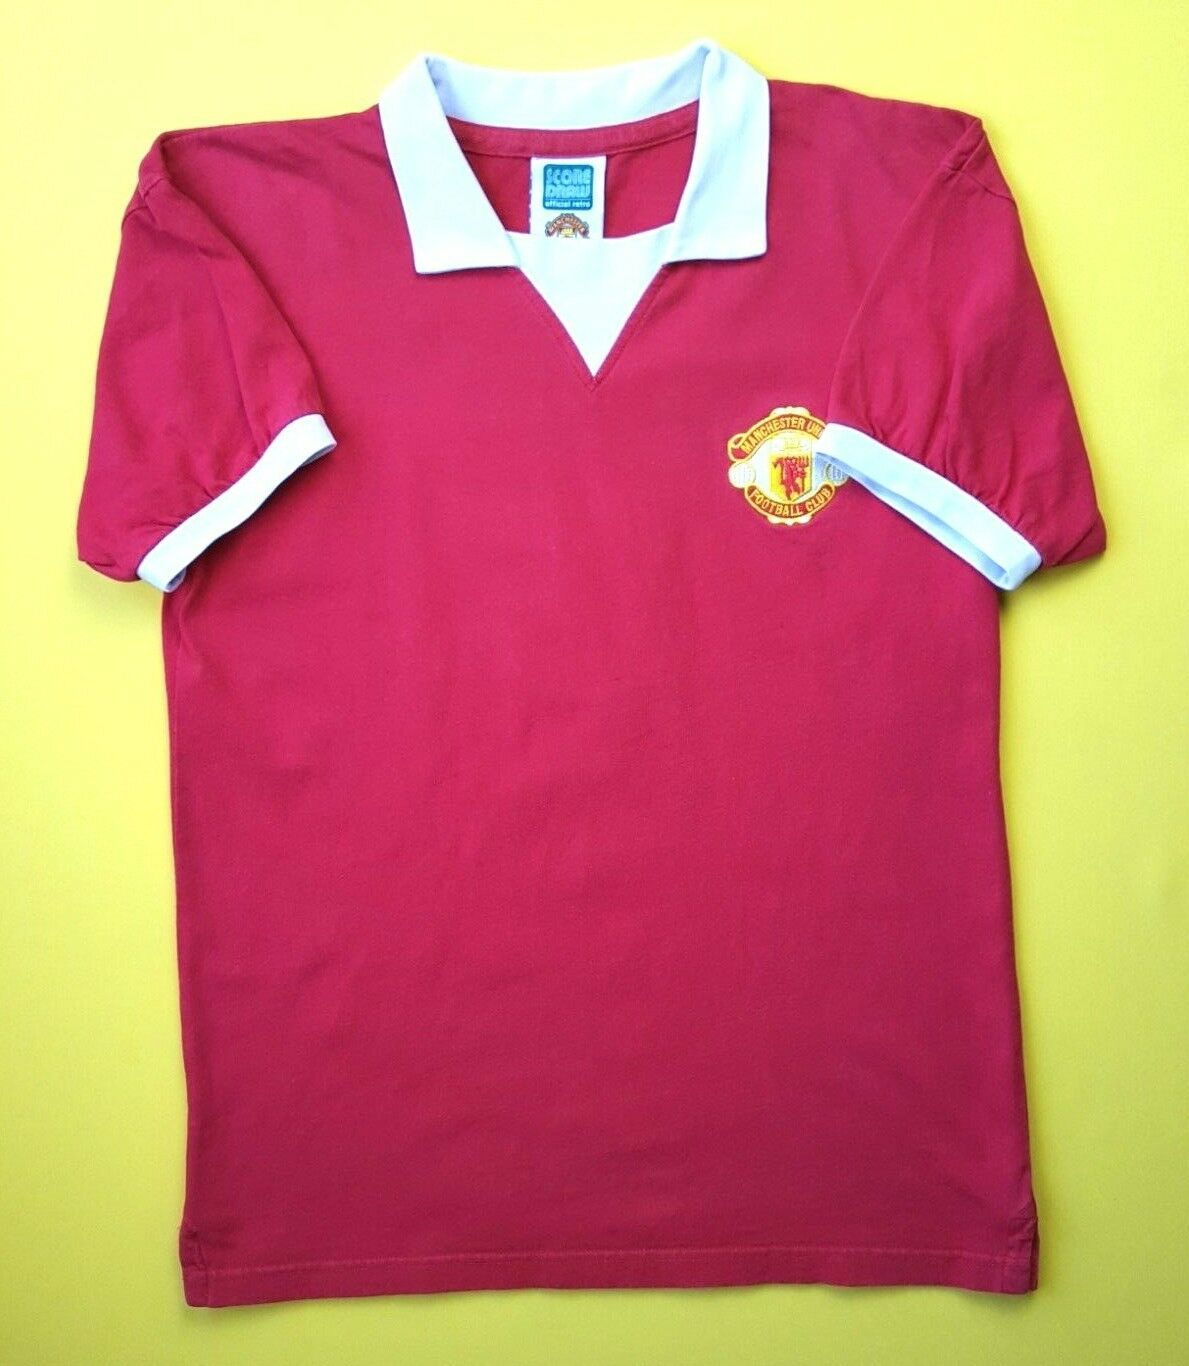 0a18c5526bd Manchester United replica jersey small 1972 1974 home shirt Score Draw  ig934.9 5